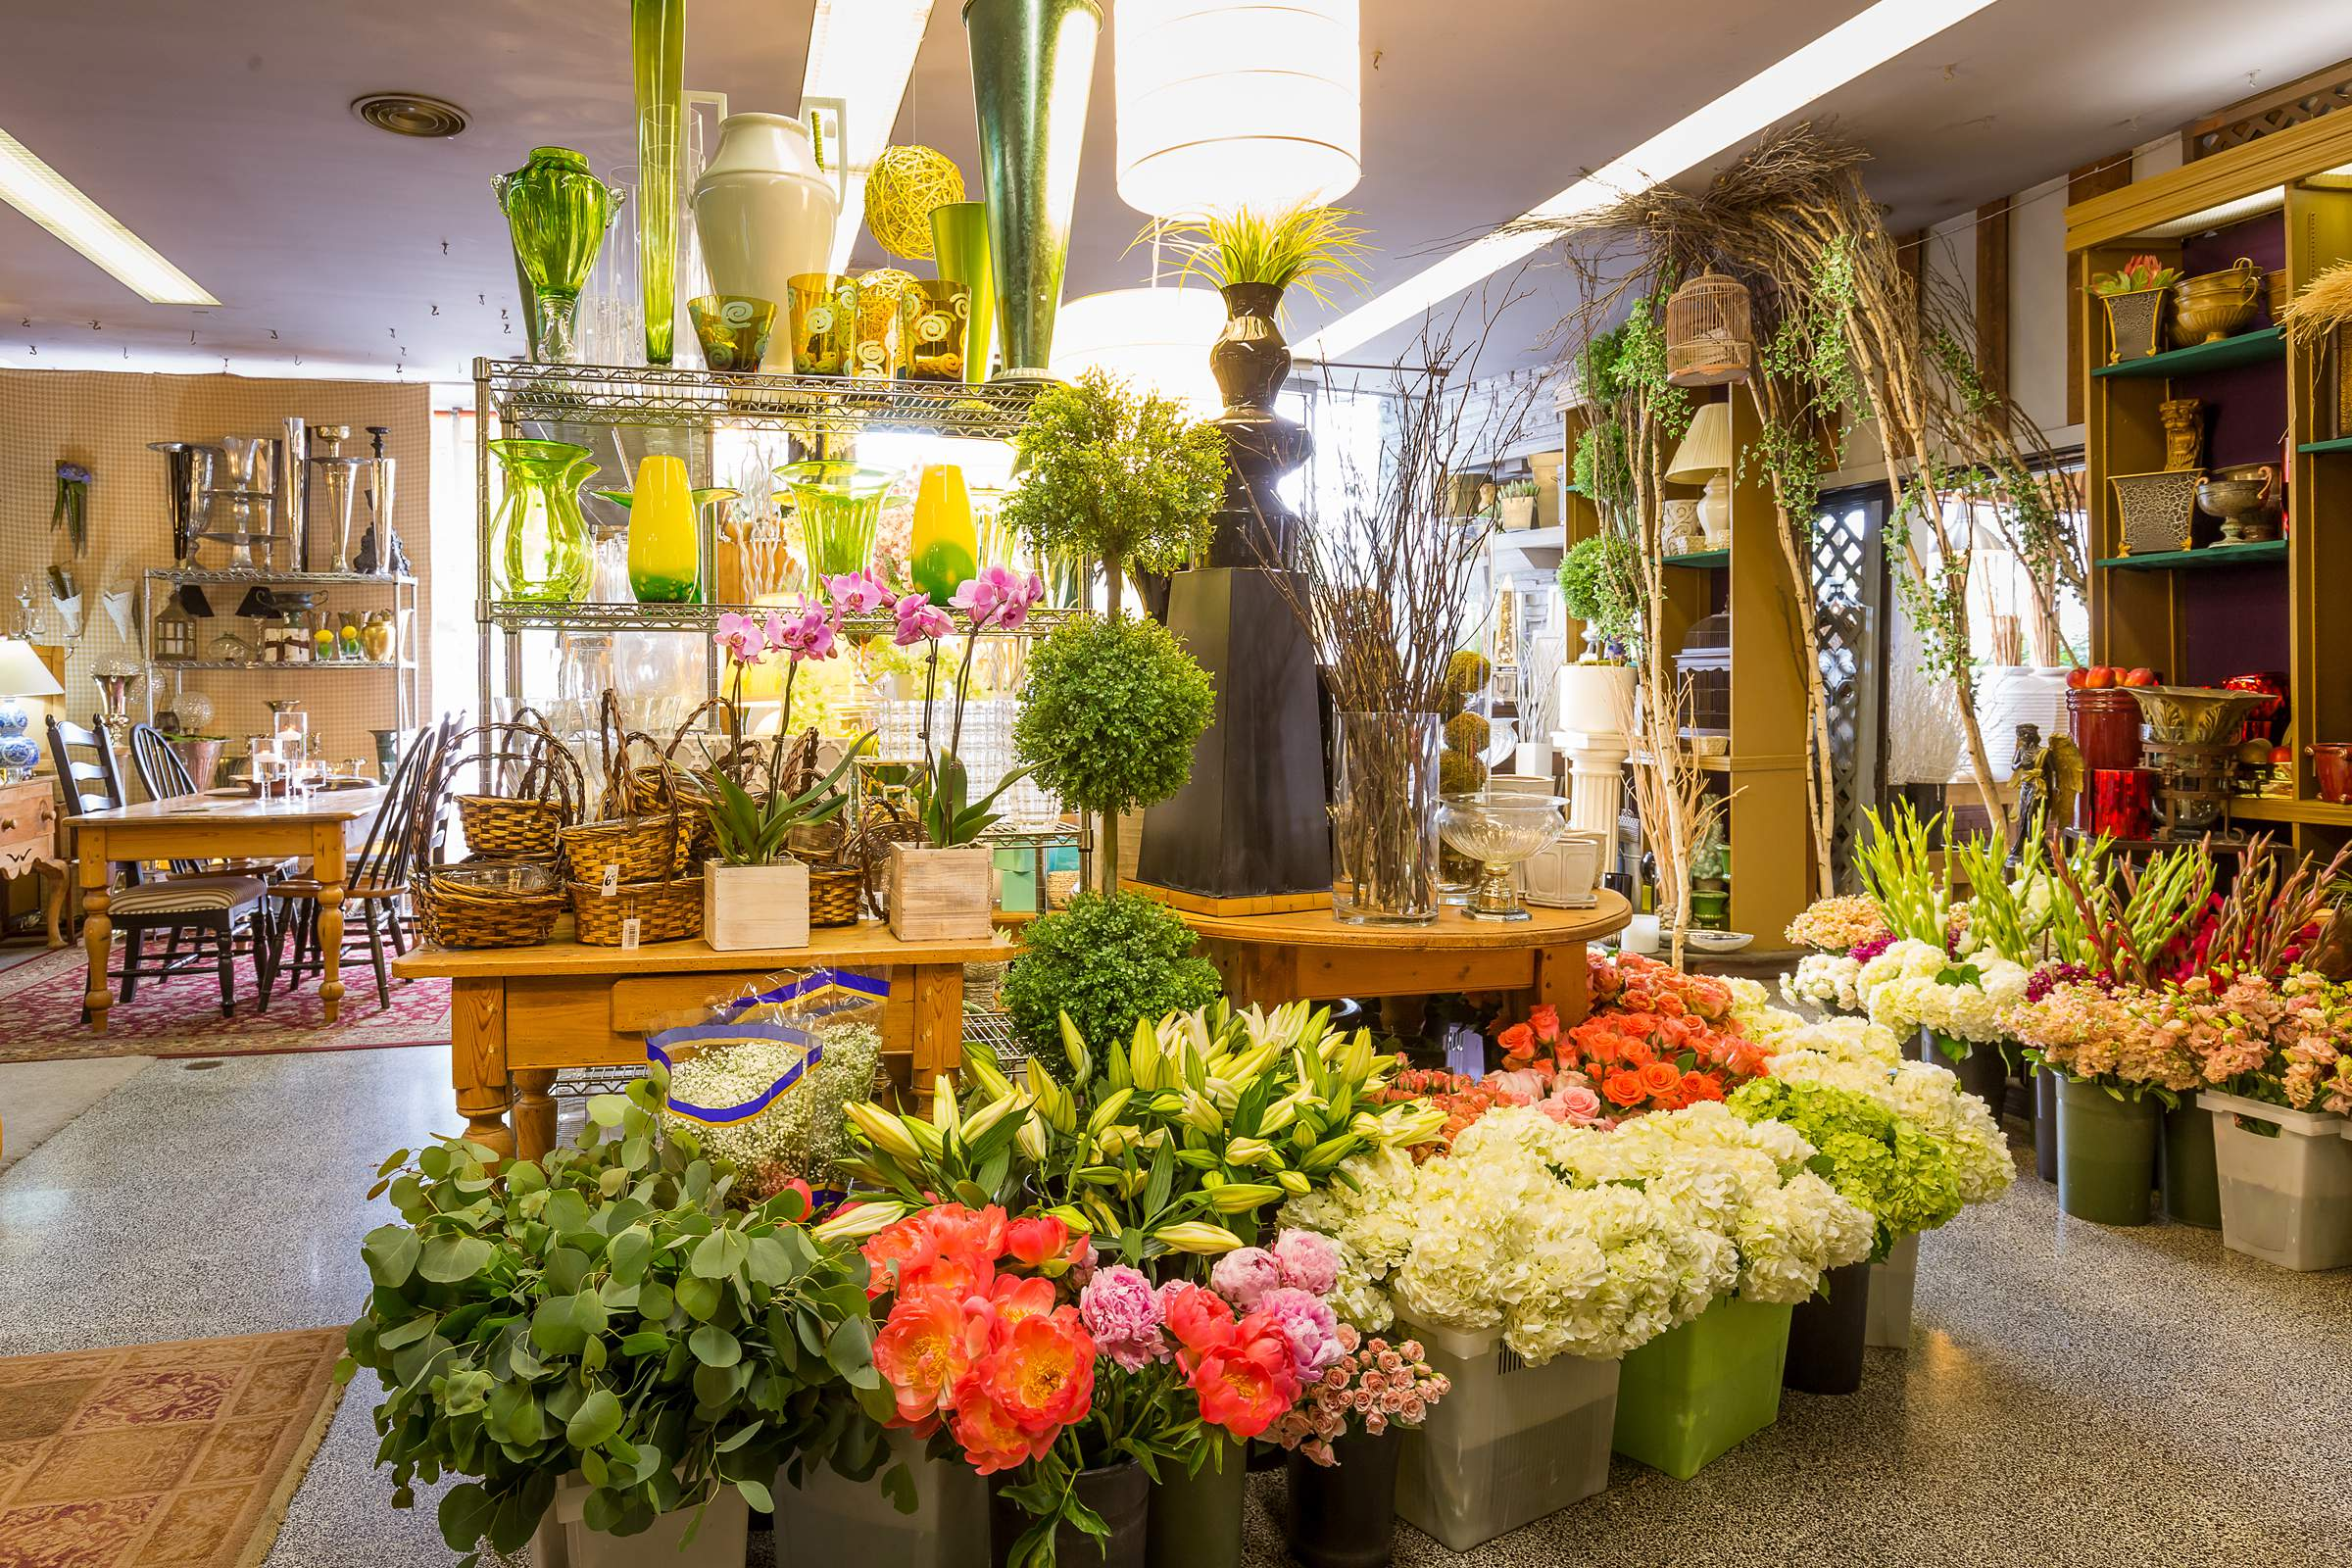 Kloeckner Flower Shop Chicago U2013 Boutique Interior Google 360 Virtual  Photography